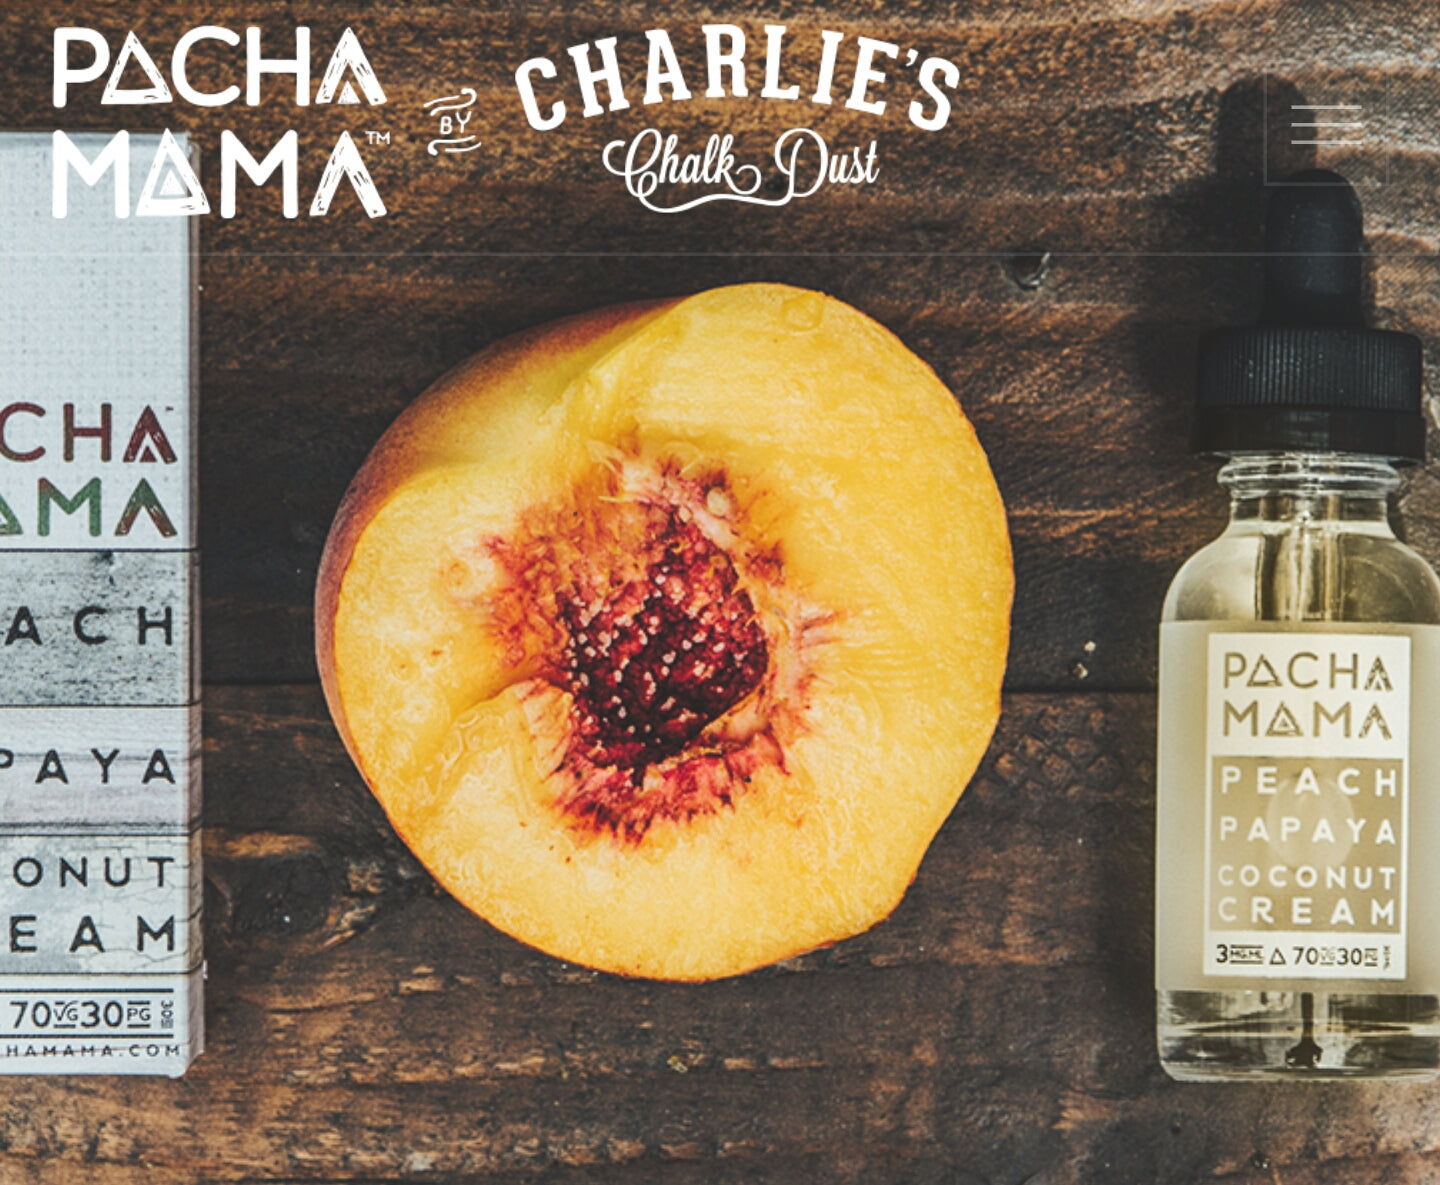 Pachamama - Peach Papaya Coconut Cream (NZ-Stock)